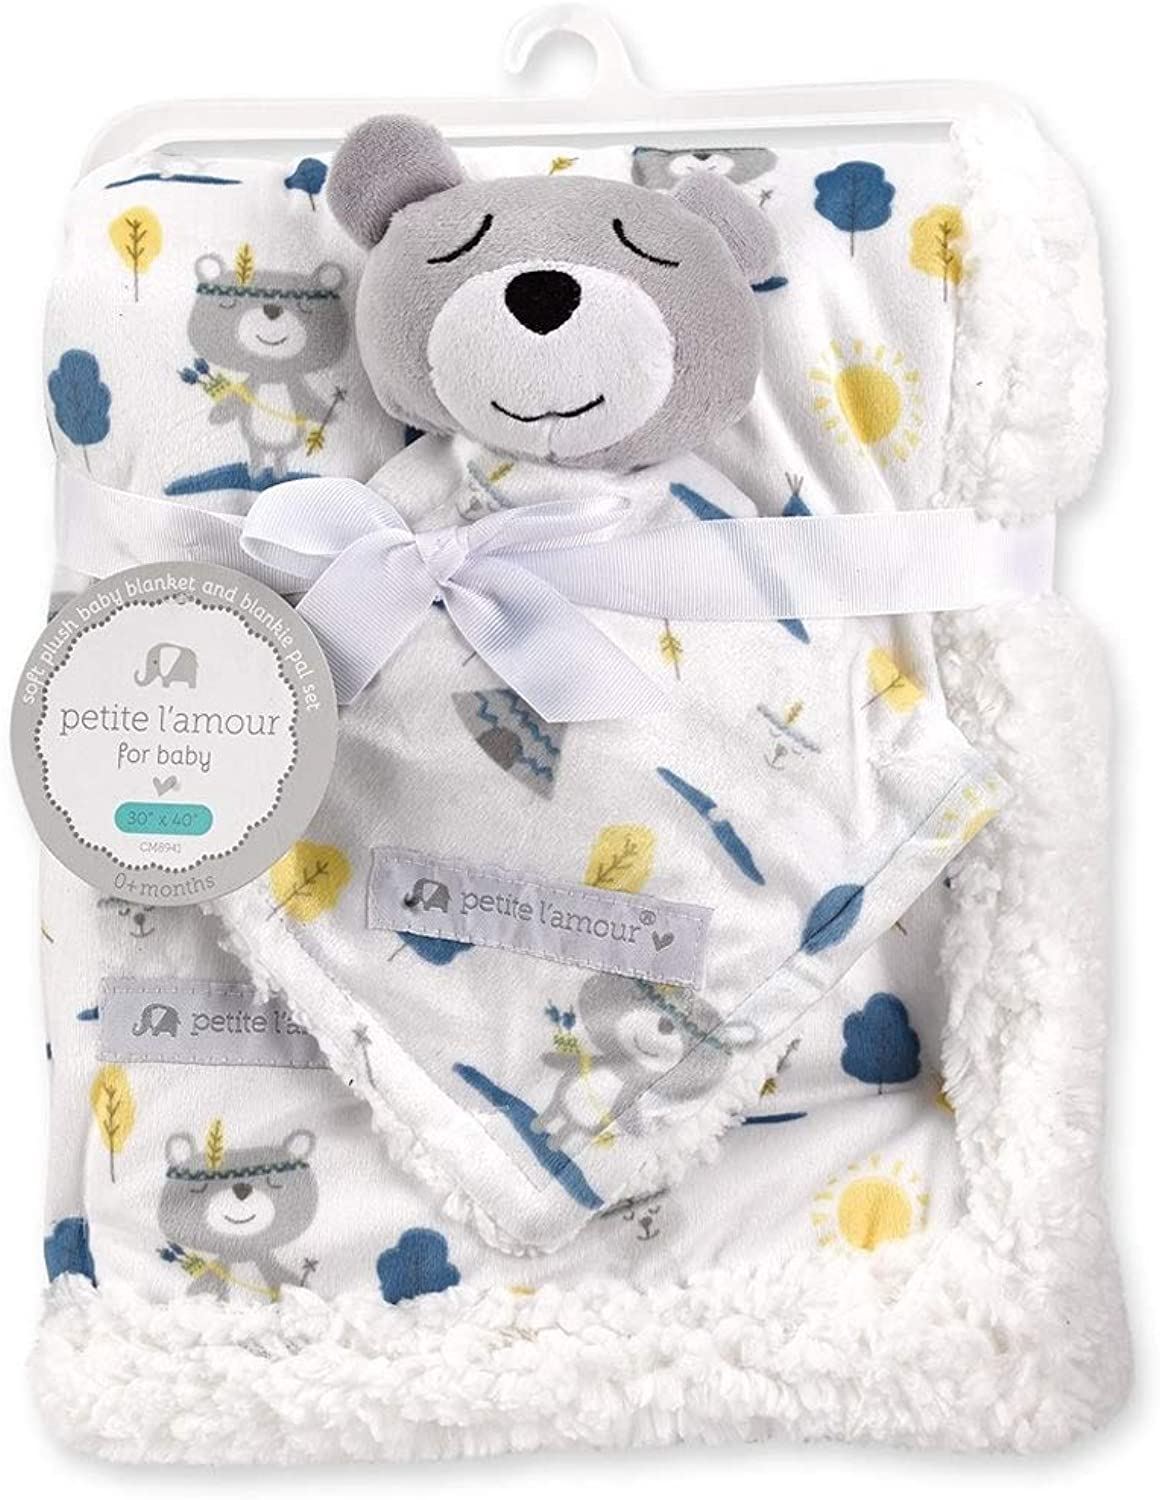 Petite L'amour Soft Plush Blanket and Blankie Pal Set - Baby Bear